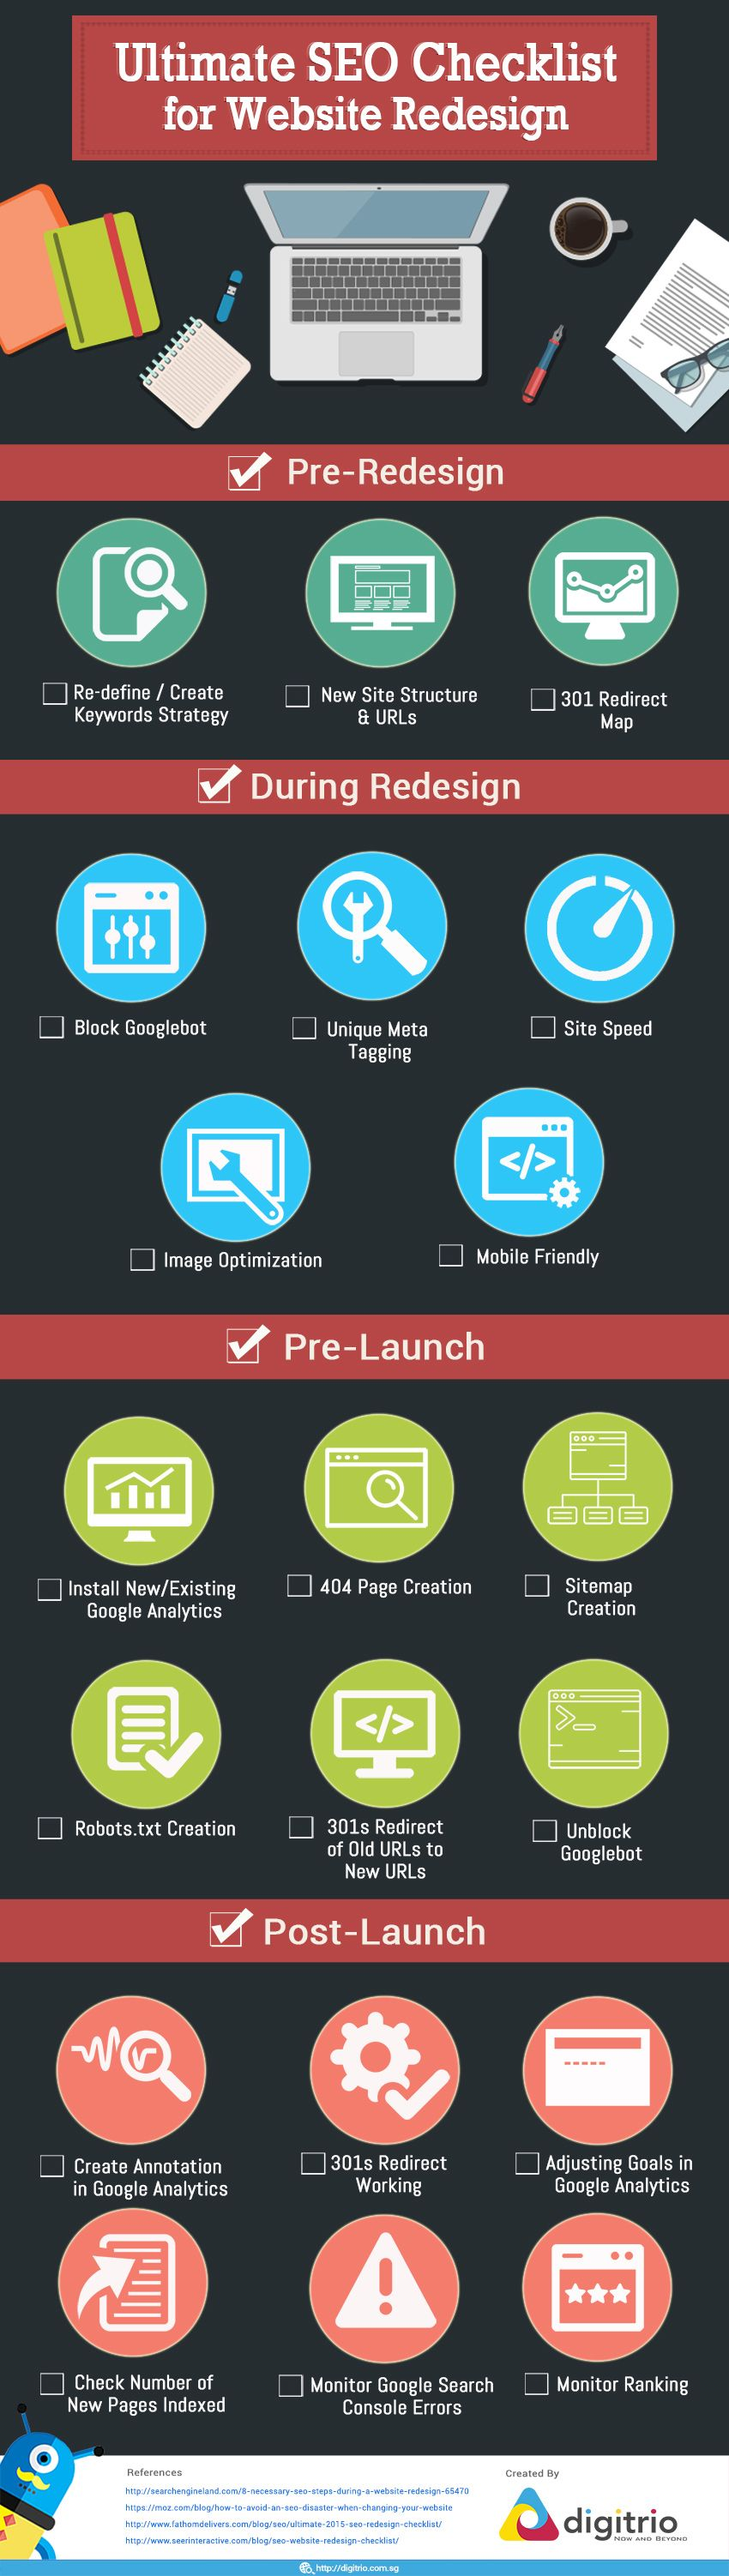 SEO Checklist for Website Redesign